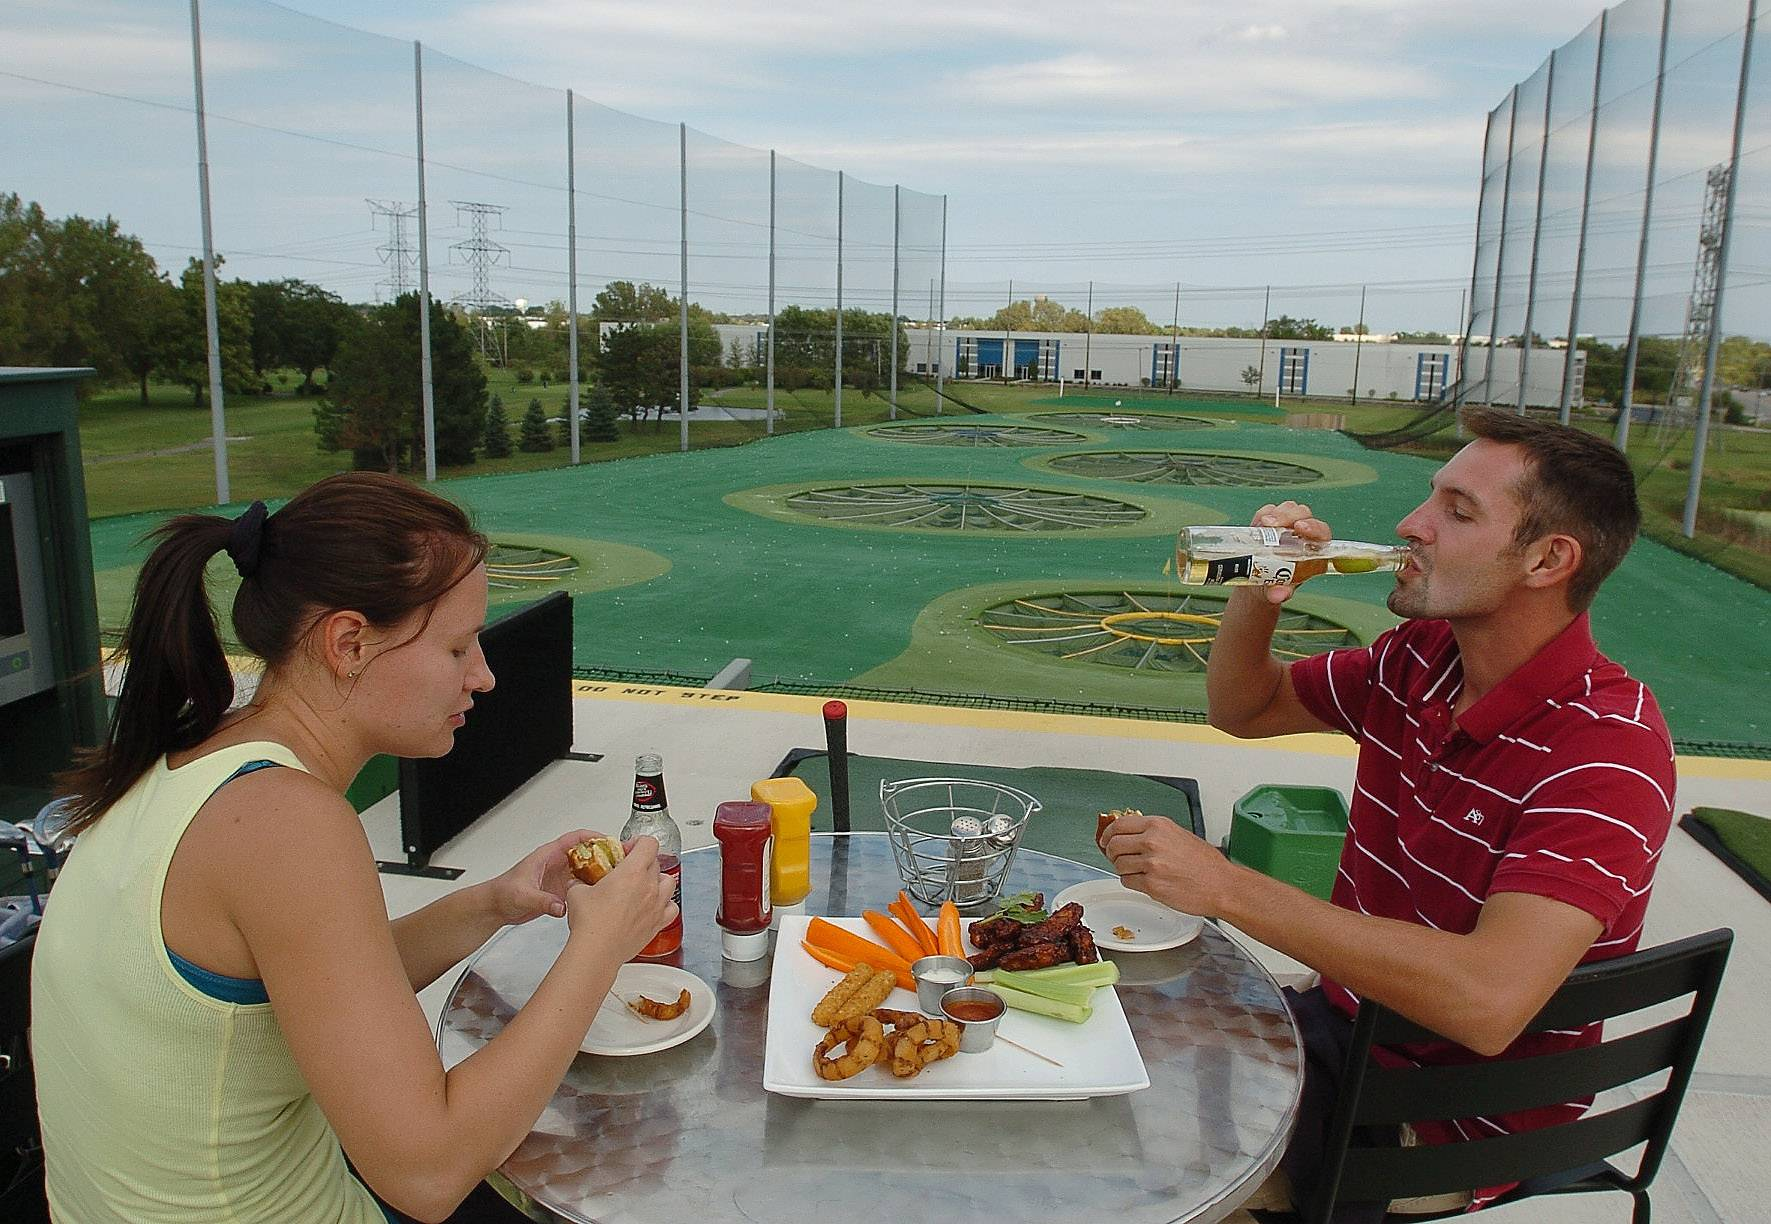 A full restaurant and bar are part of the setup for the golf entertainment facility Texas-based Top Golf plans to build in Naperville. Plans call for a $20 million, 65,000-square-foot driving range with 102 hitting bays and a corporate events area.